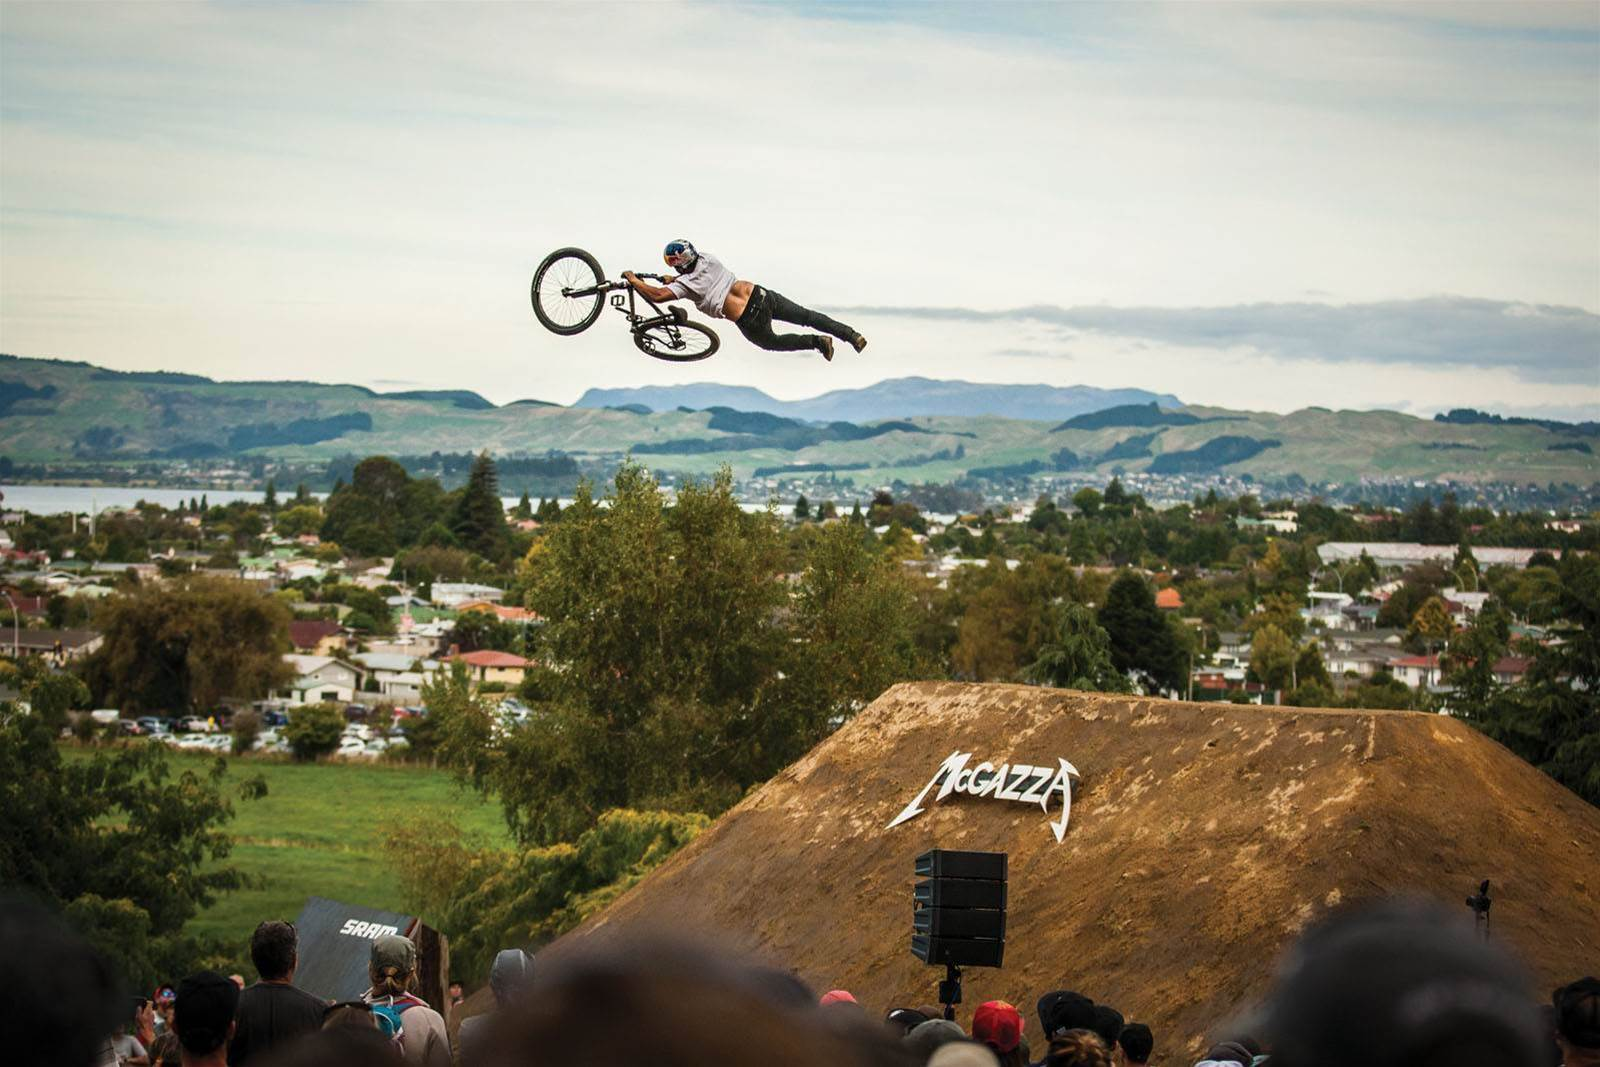 What's the big deal with Cranworx Rotorua?